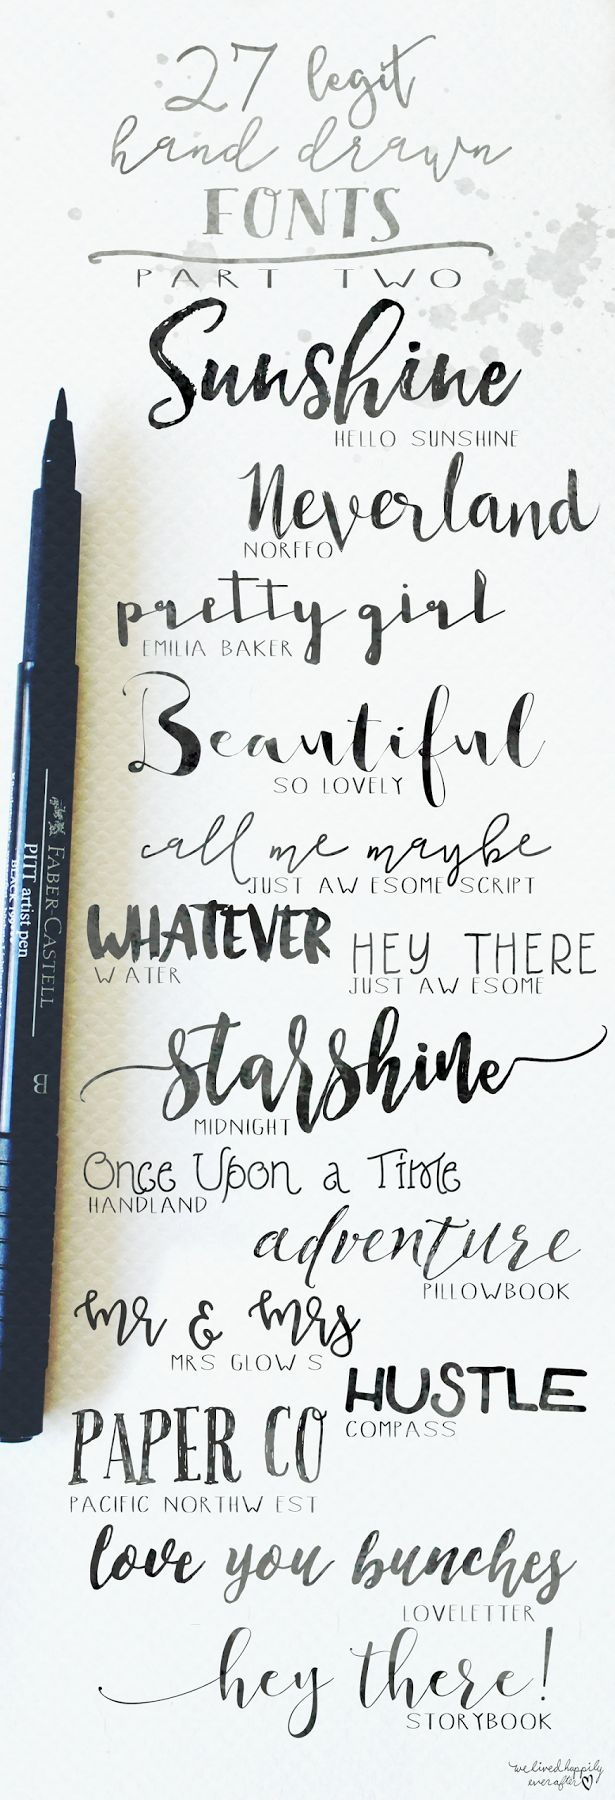 We Lived Happily Ever After: 27 Legit Hand Drawn Fonts | Part 2